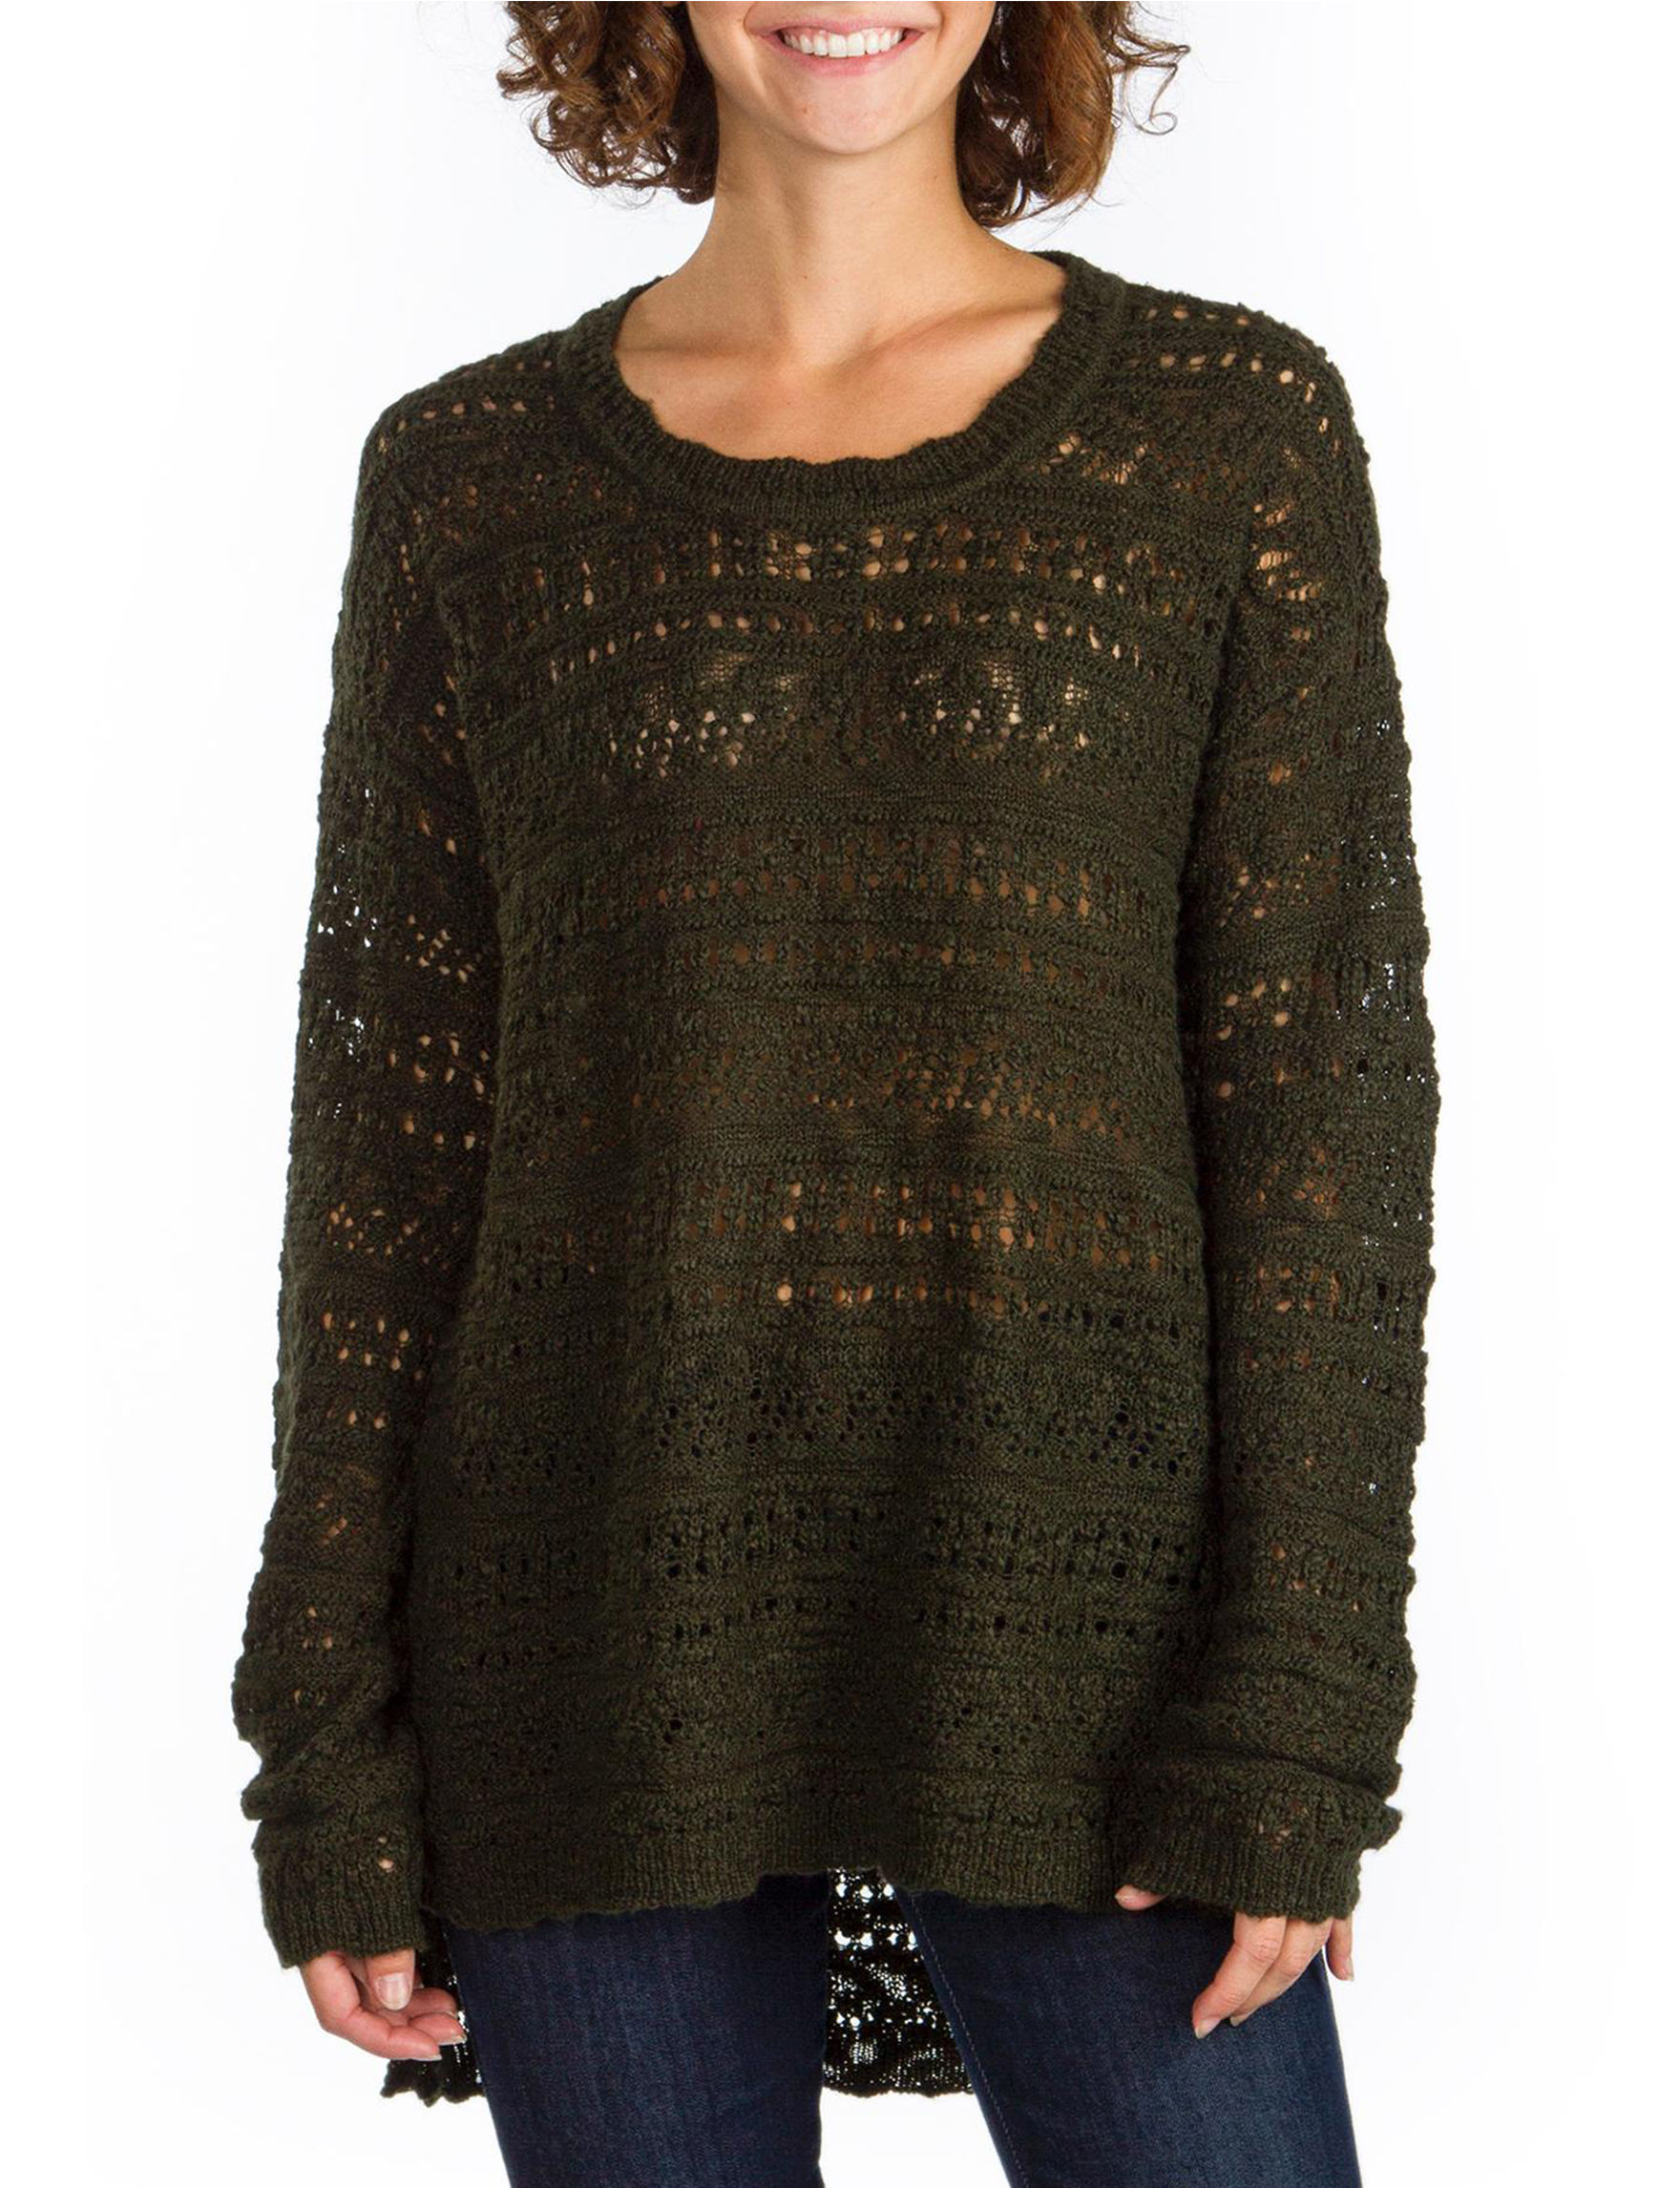 Union Bay Green Pull-overs Sweaters